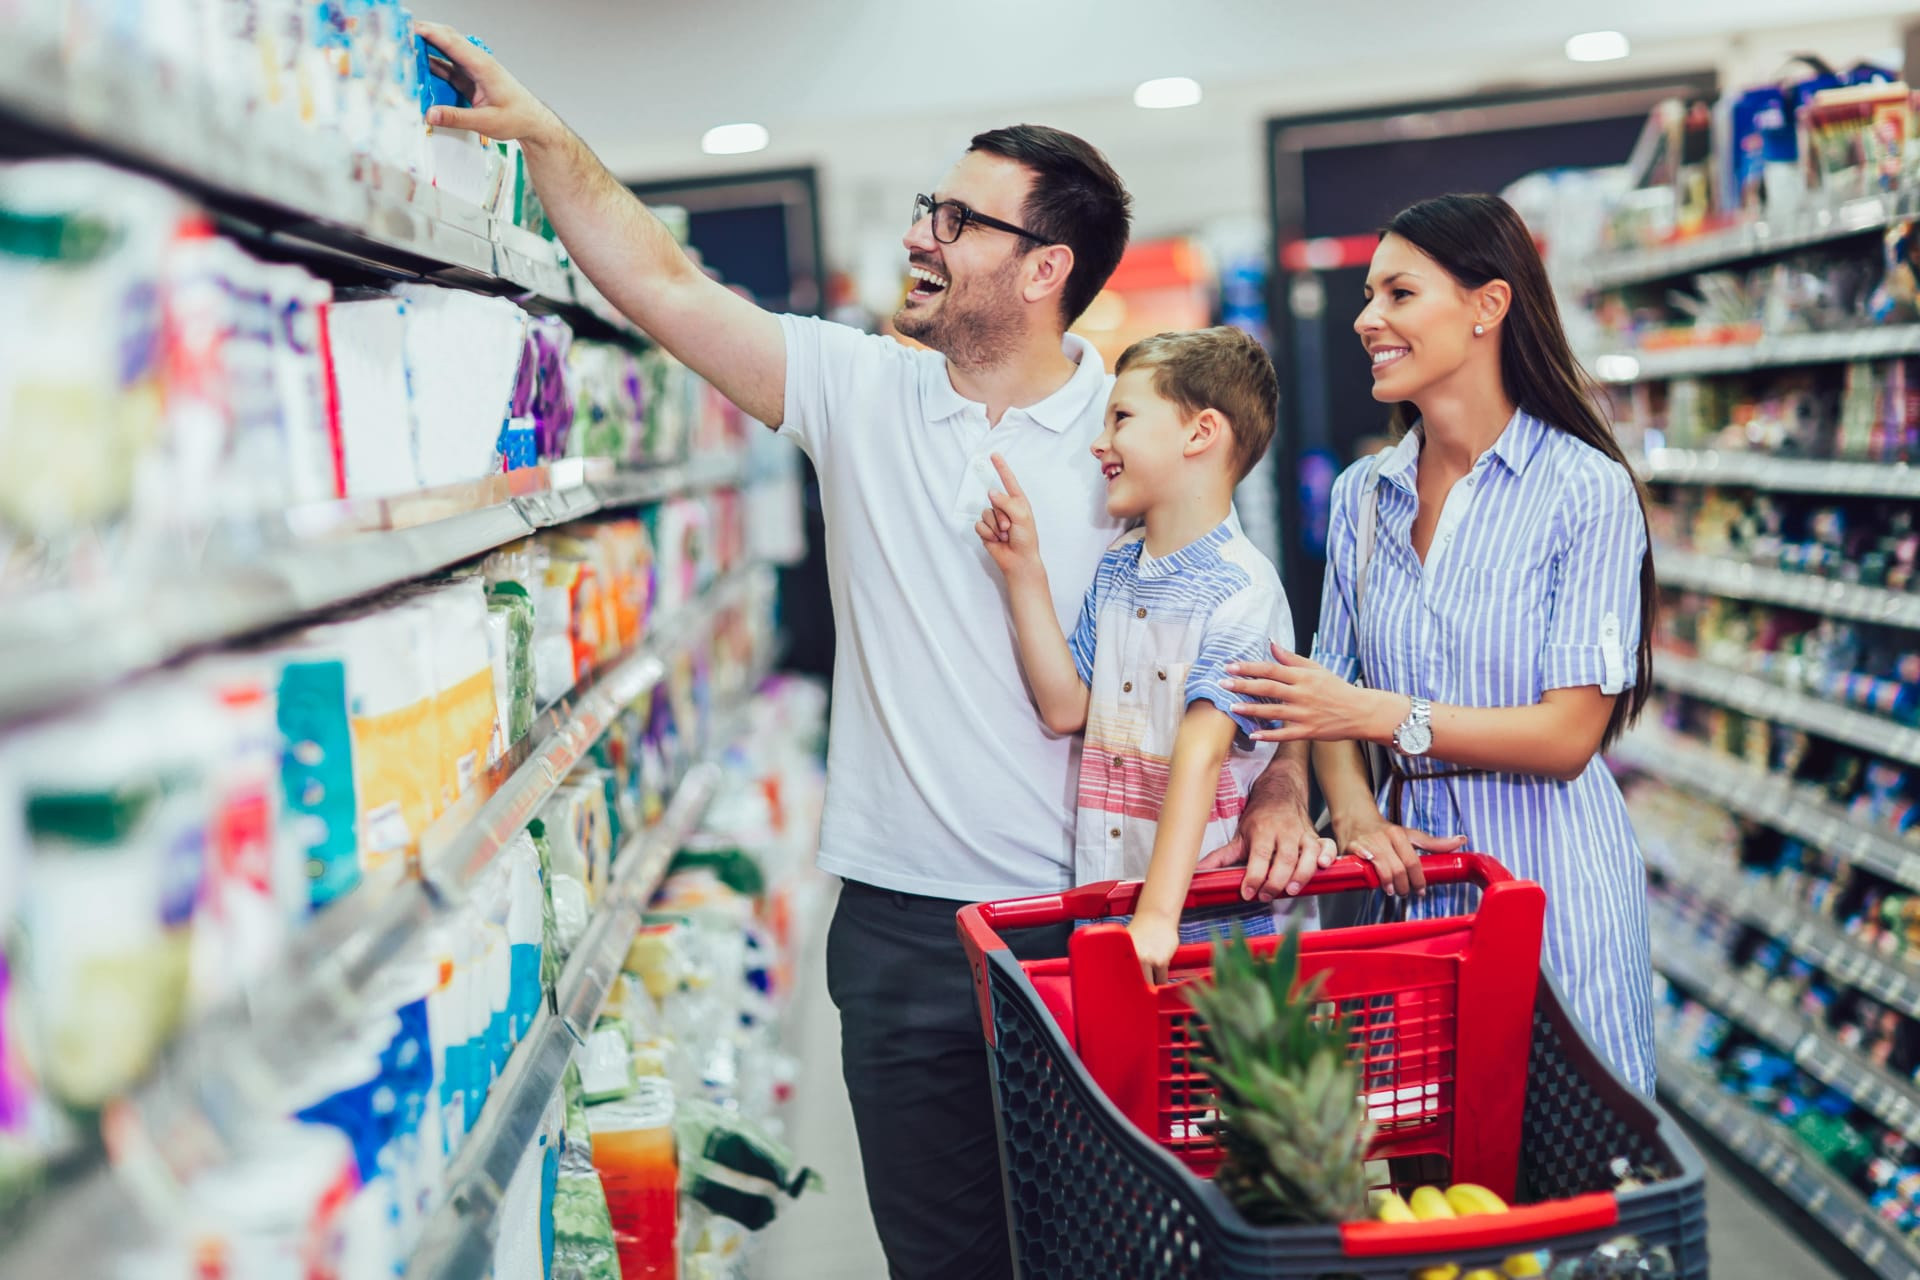 Family in a supermarket looking for period products